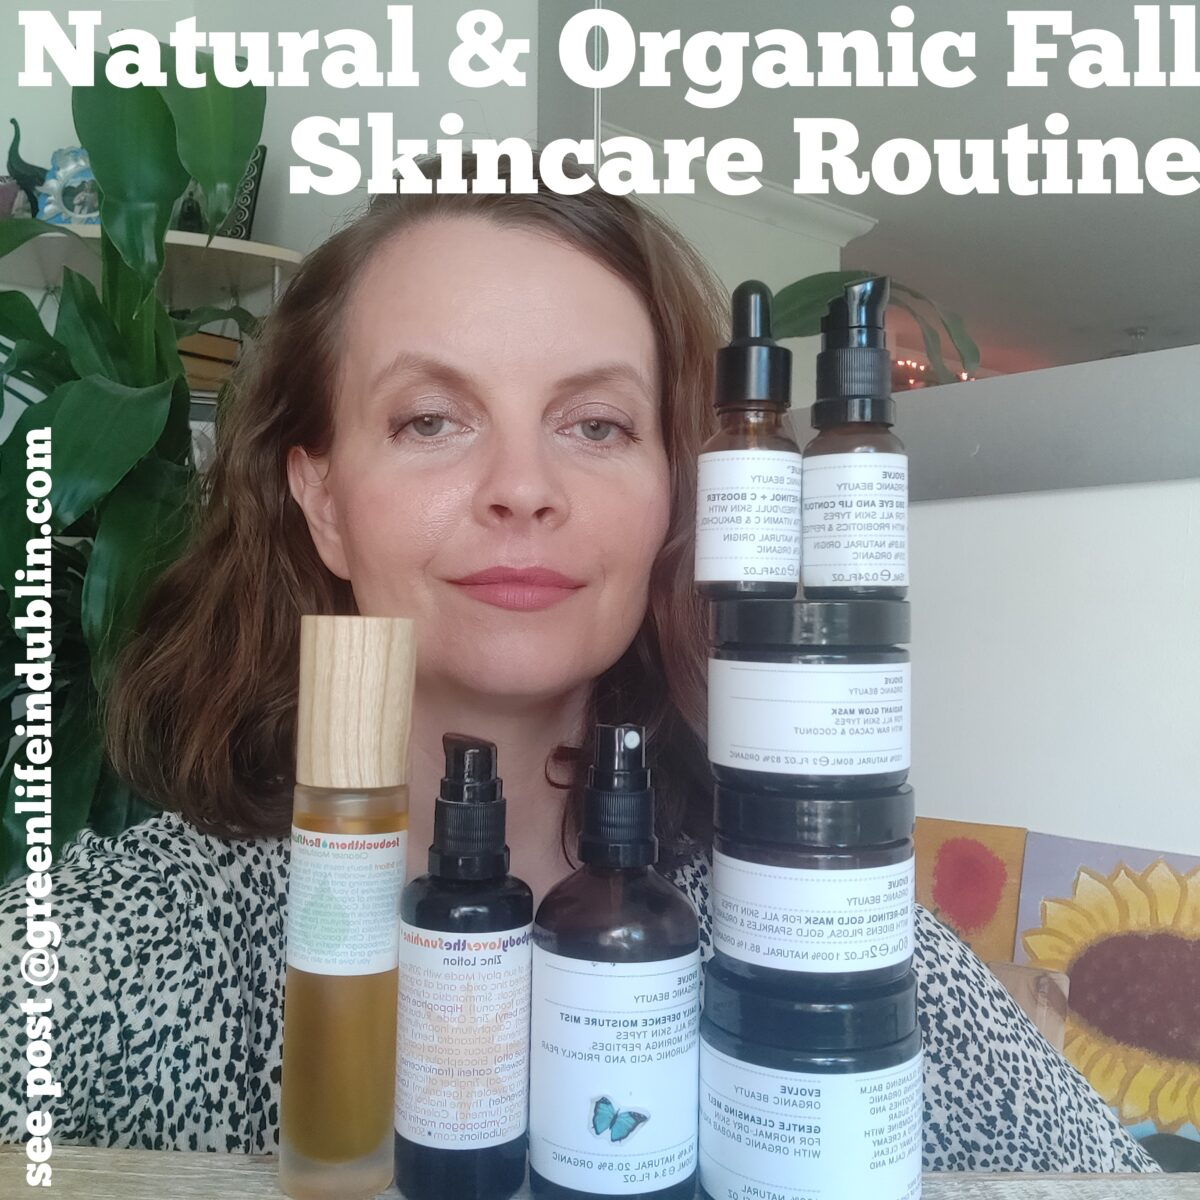 My Natural & Organic Fall Skincare Routine – Evolve Organic Beauty, Living Libations, Alteya Organics, Khadi & More